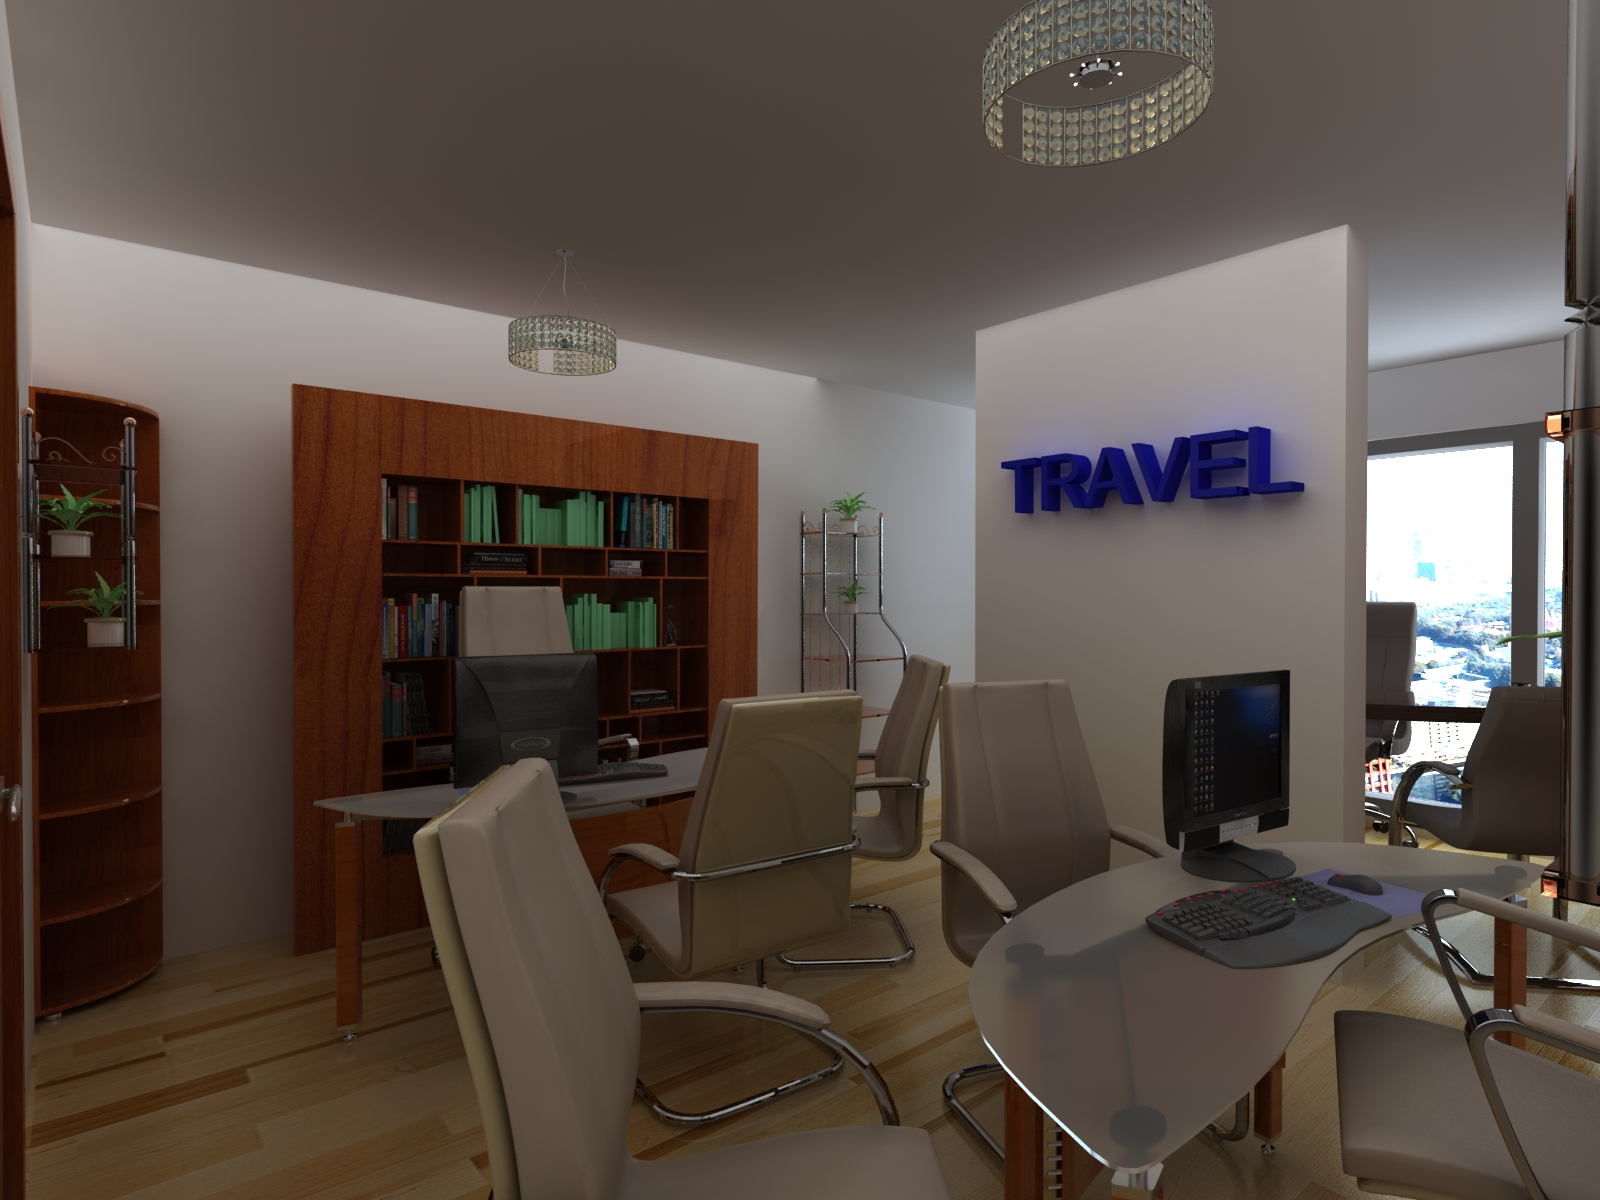 Travel Agency Interior Design Var 4